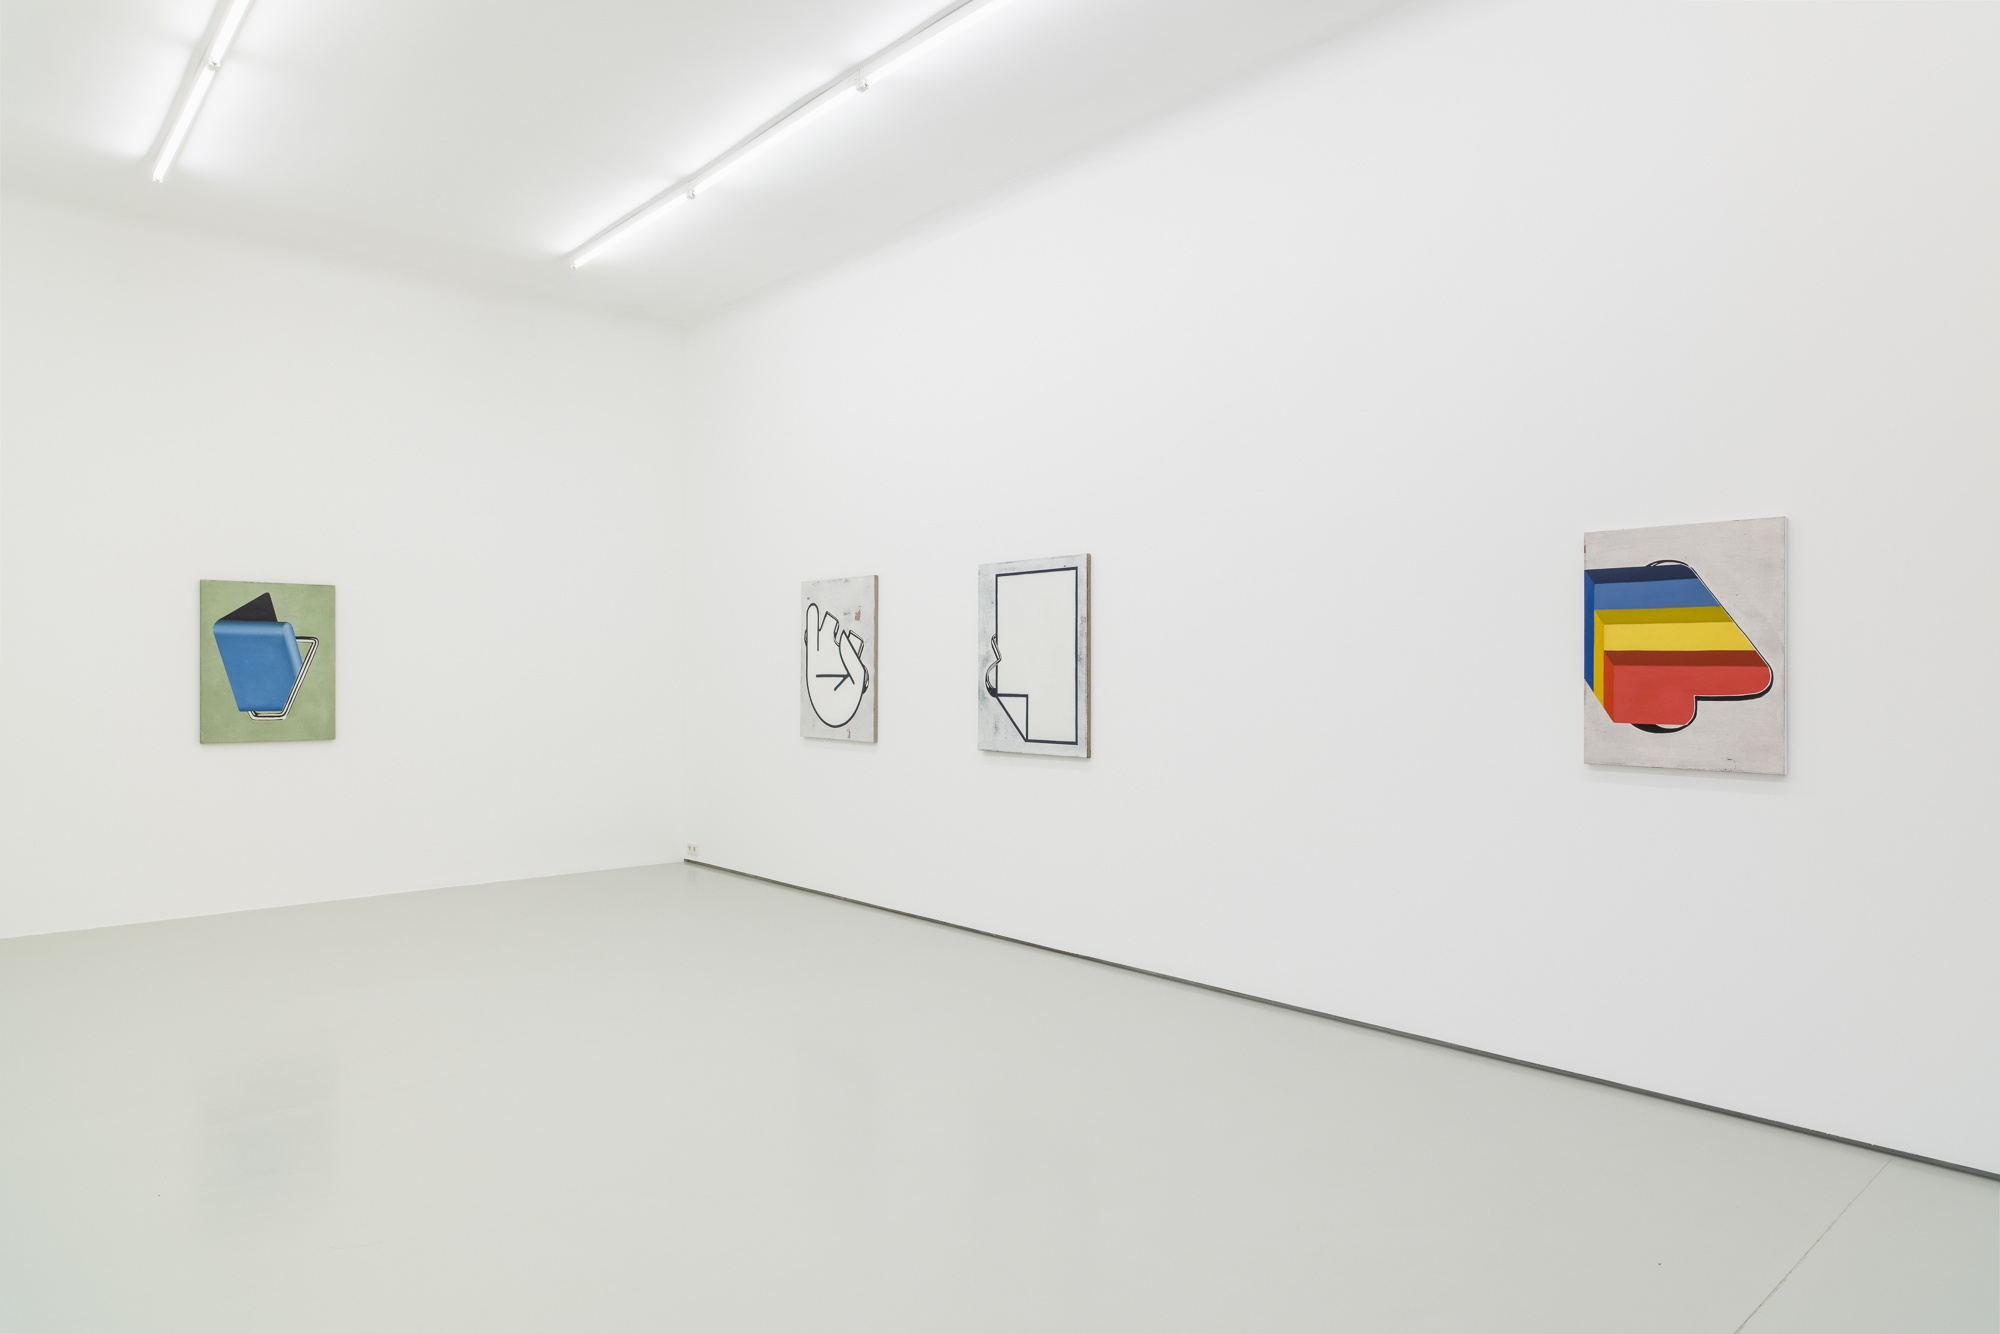 Anne Neukamp, ALT-MOA-BIT, exhibition view, Gregor Podnar, Berlin, 2019. Photo: Marcus Schneider